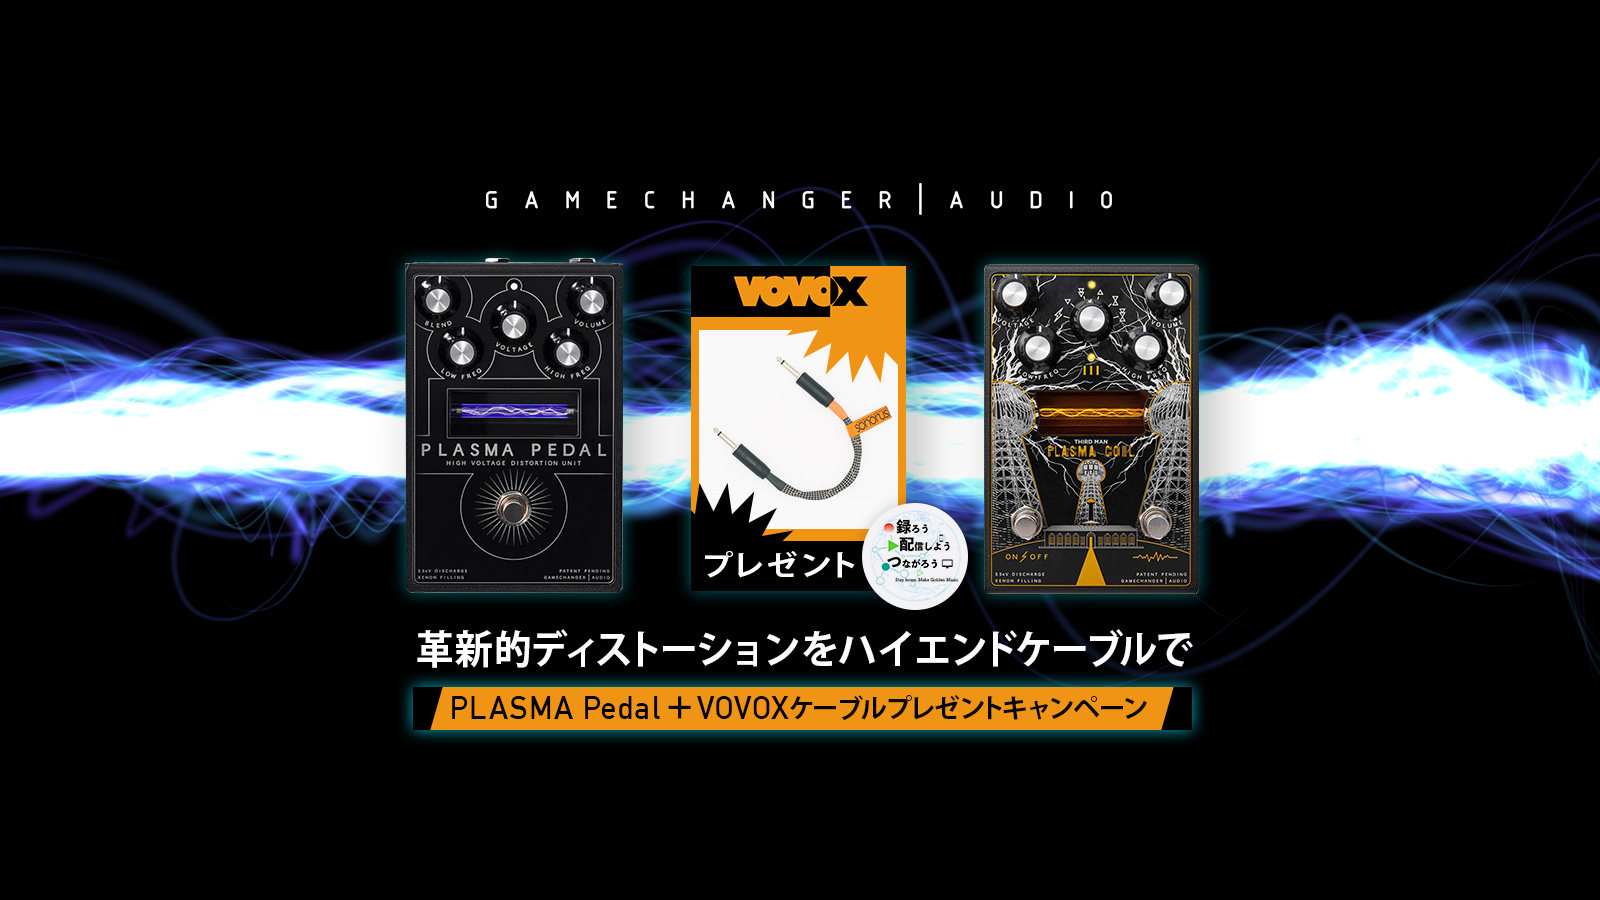 Gamechanger Audio PLASMA Pedal:VOVOXケーブルプレゼントキャンペーン